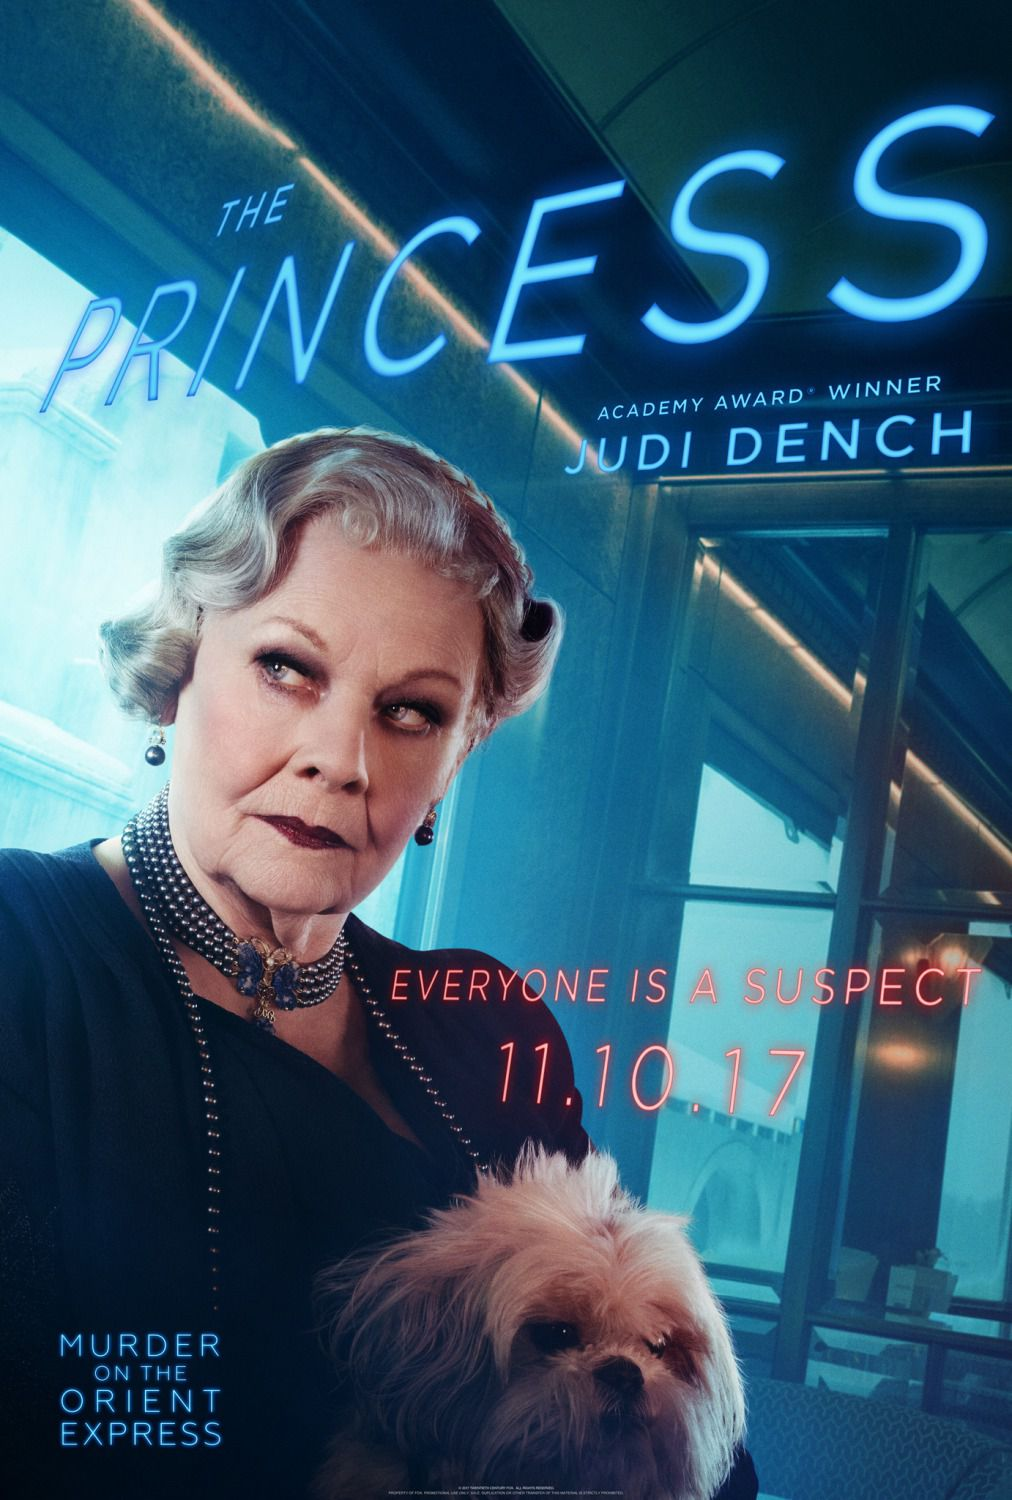 Judi Dench - Princess